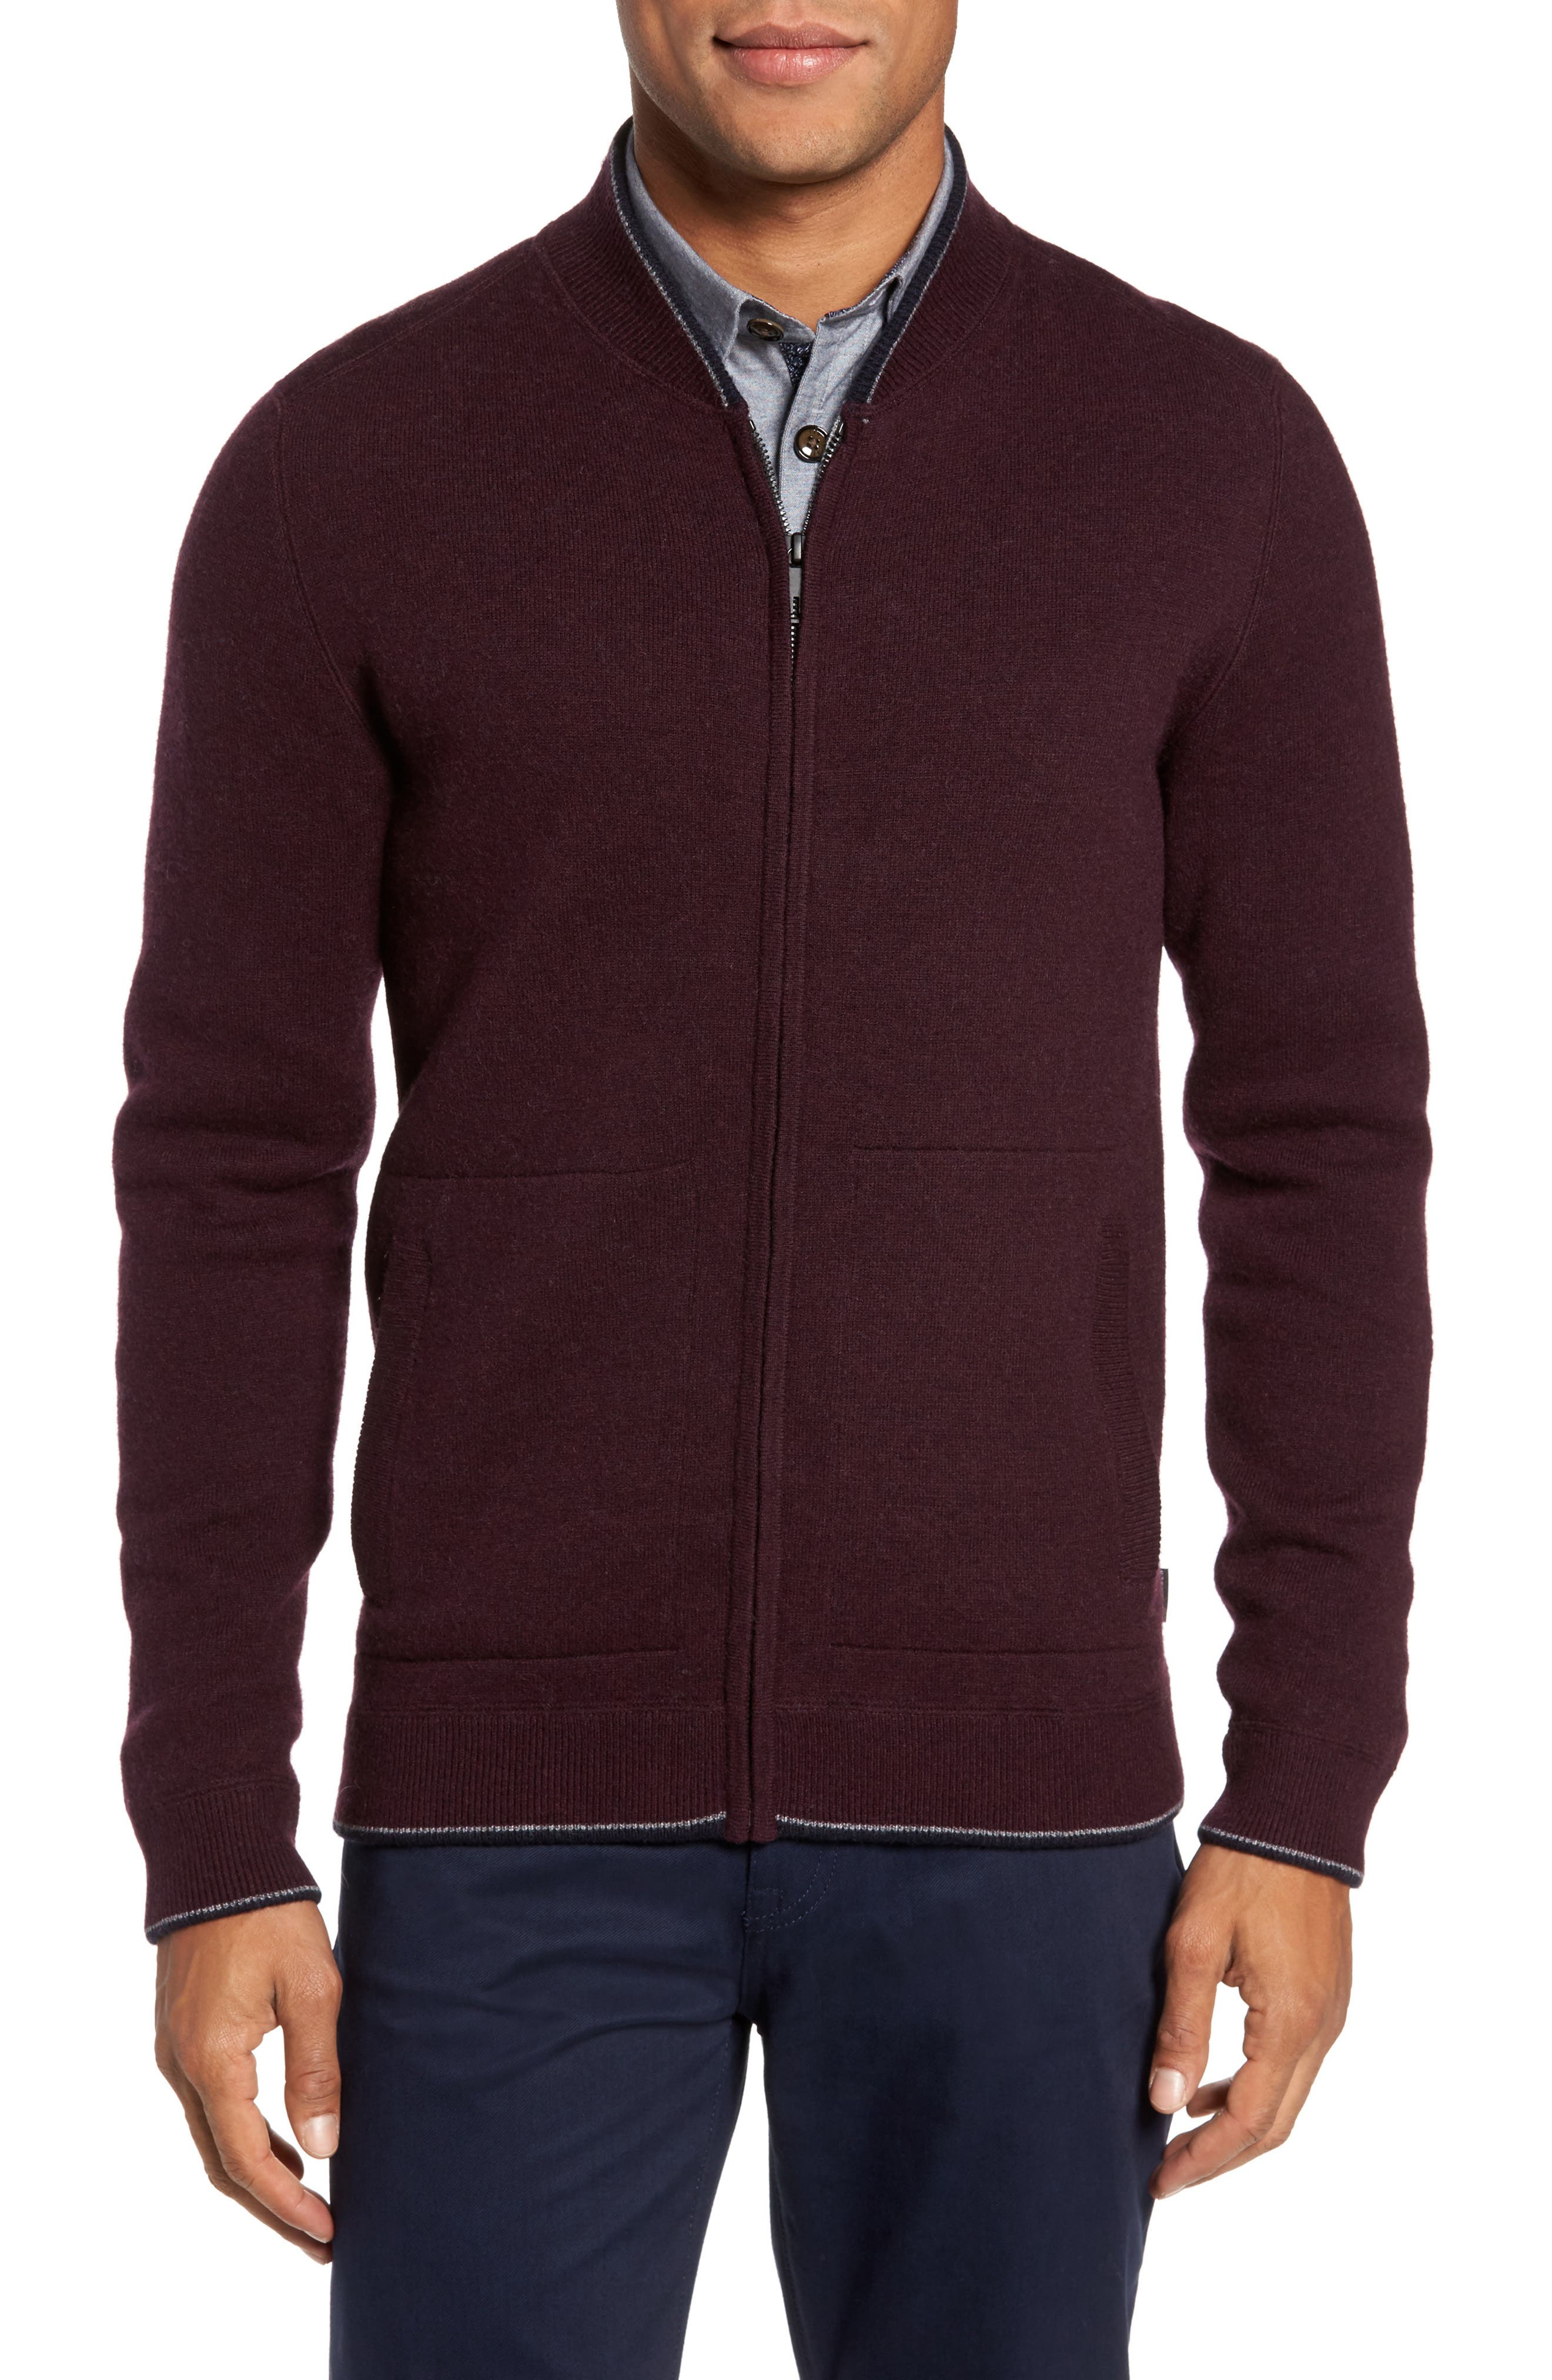 Alternate Image 1 Selected - Ted Baker London Merino Wool Baseball Sweater